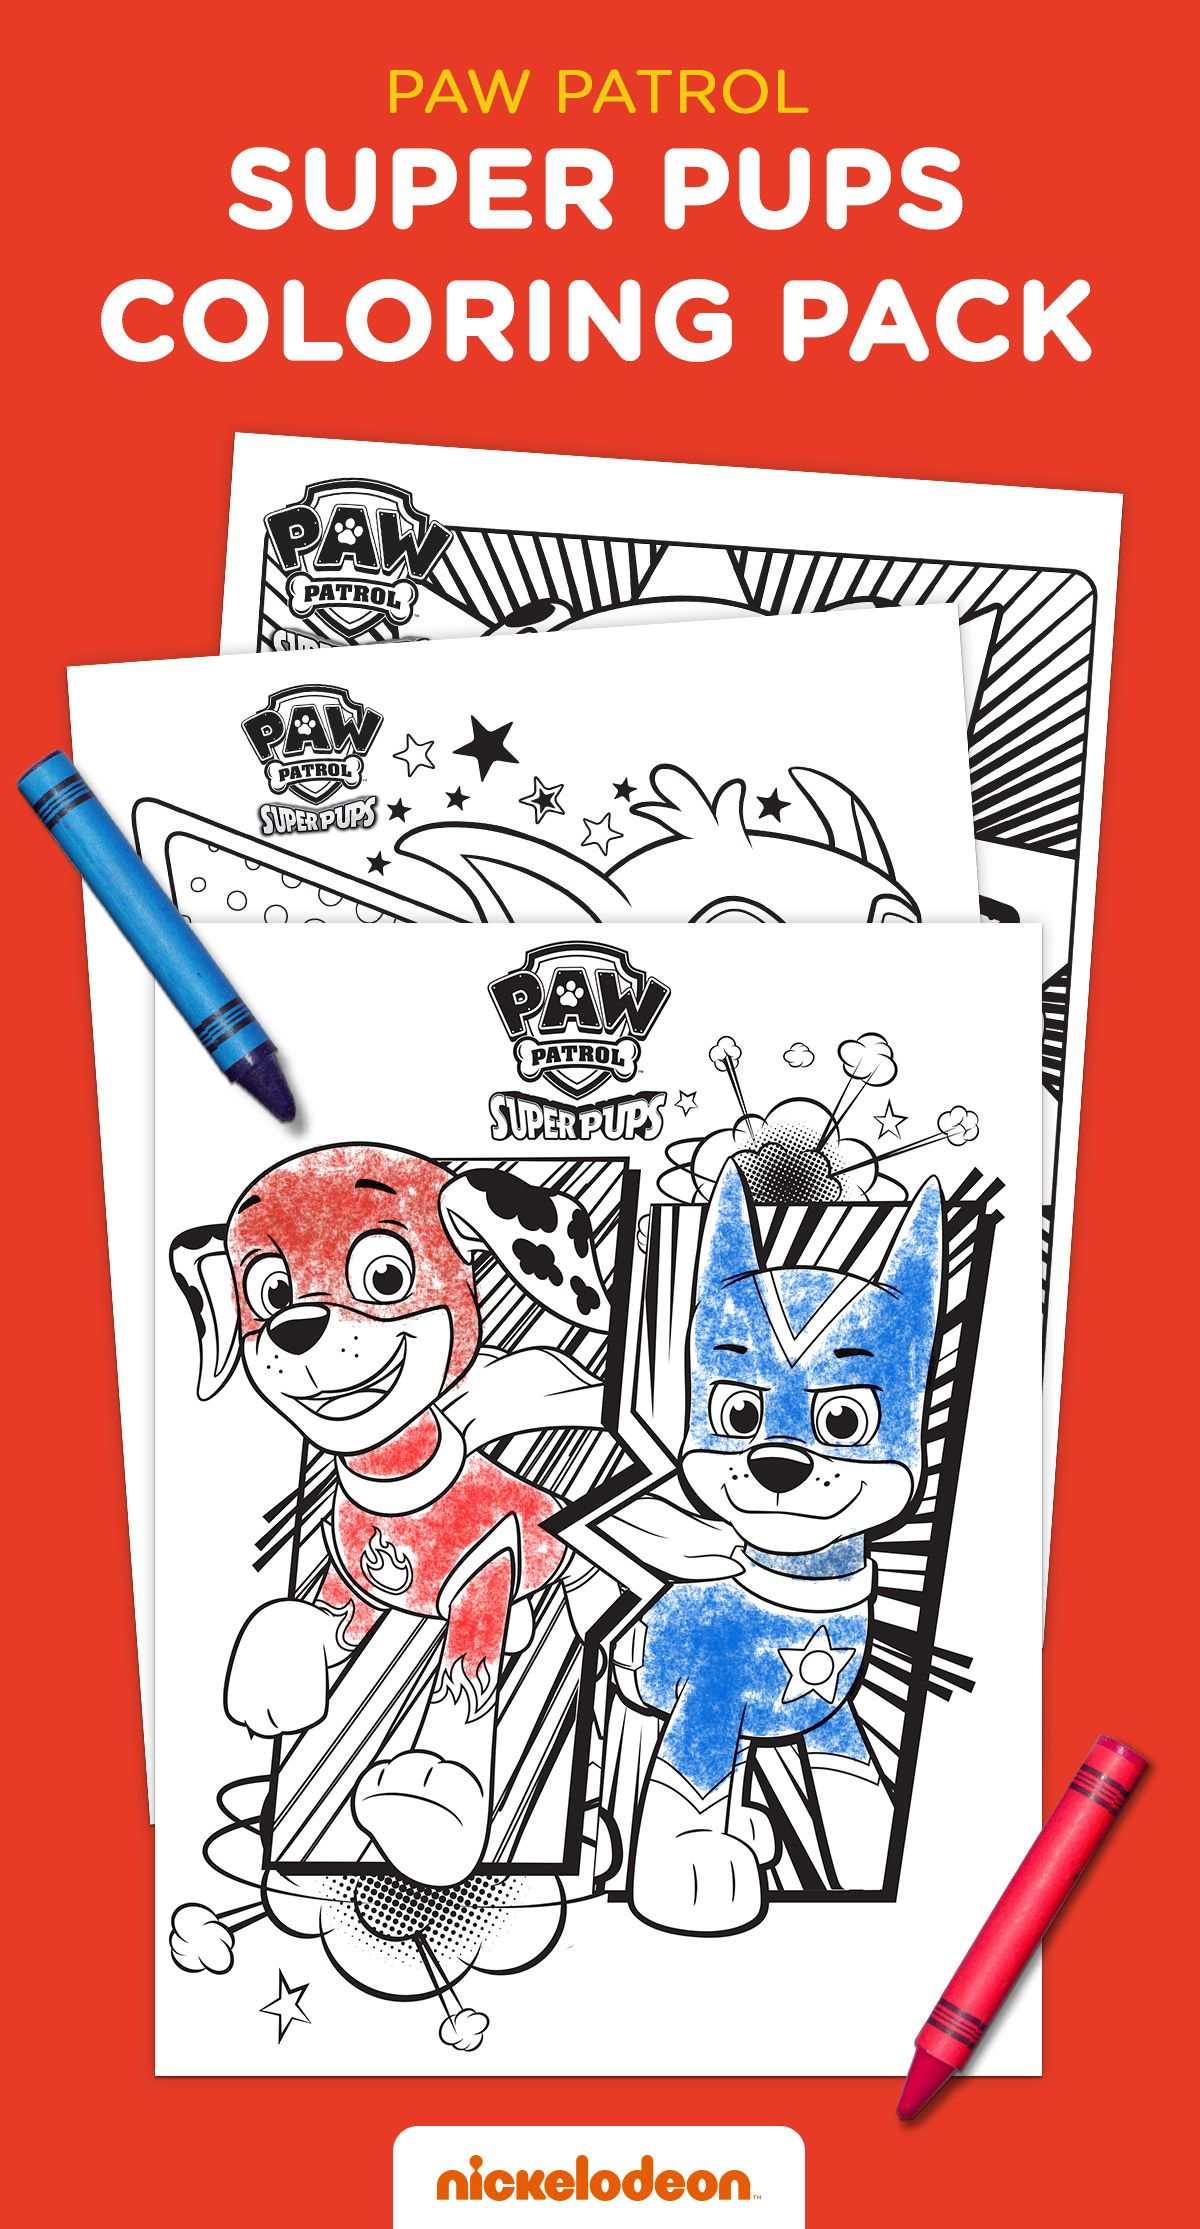 Super Pups Coloring Pack in 2020 Paw patrol coloring